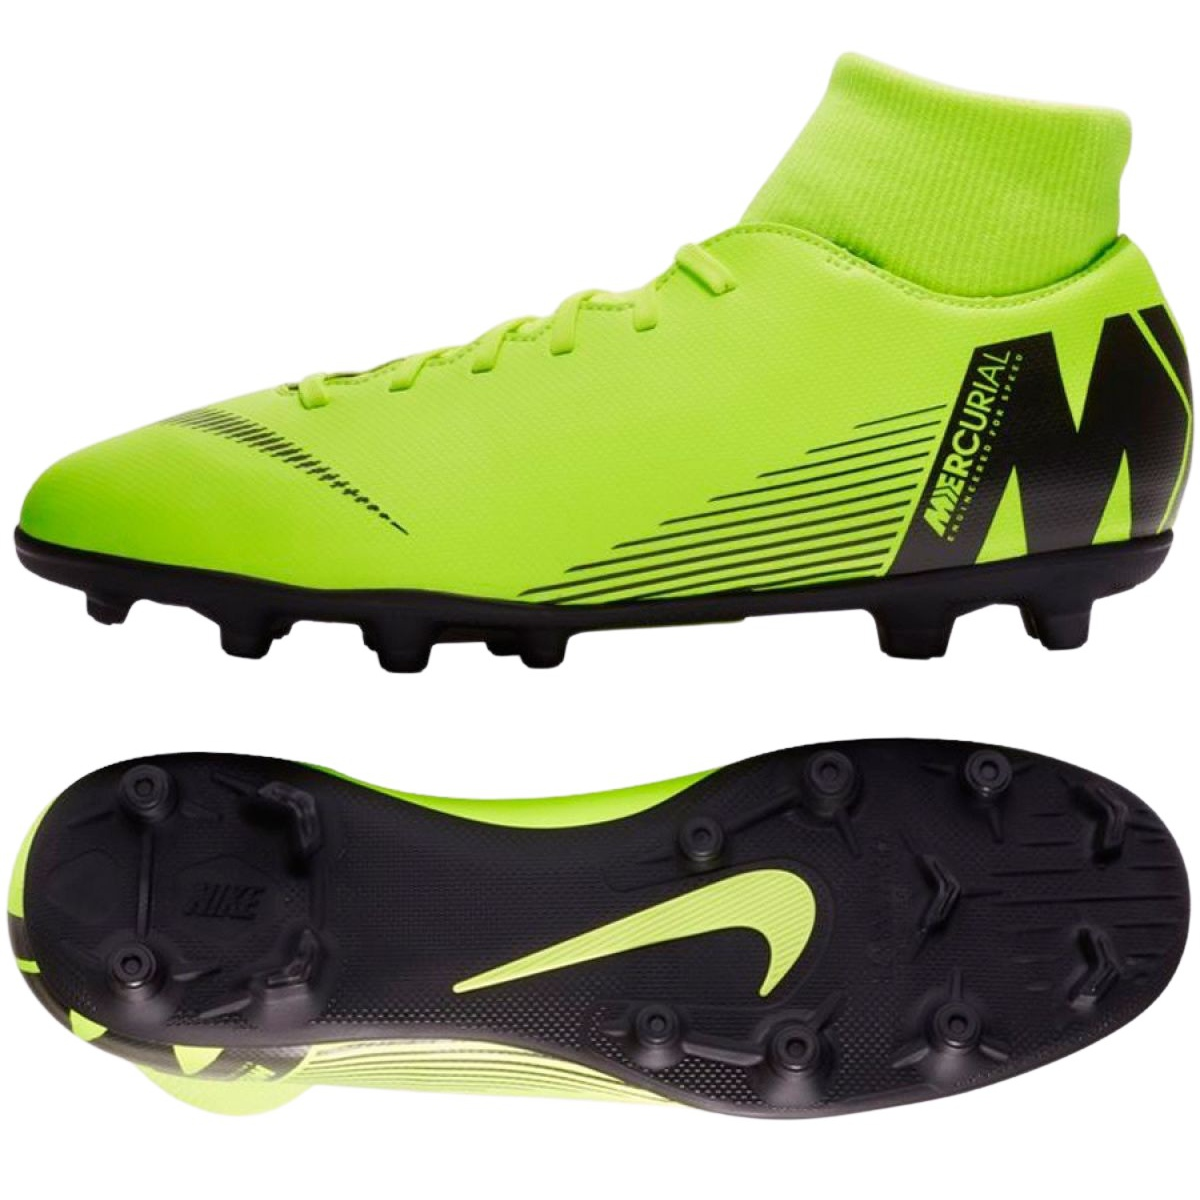 premium selection a2c64 3388c Football shoes Nike Mercurial Superfly 6 Club Mg M AH7363-701